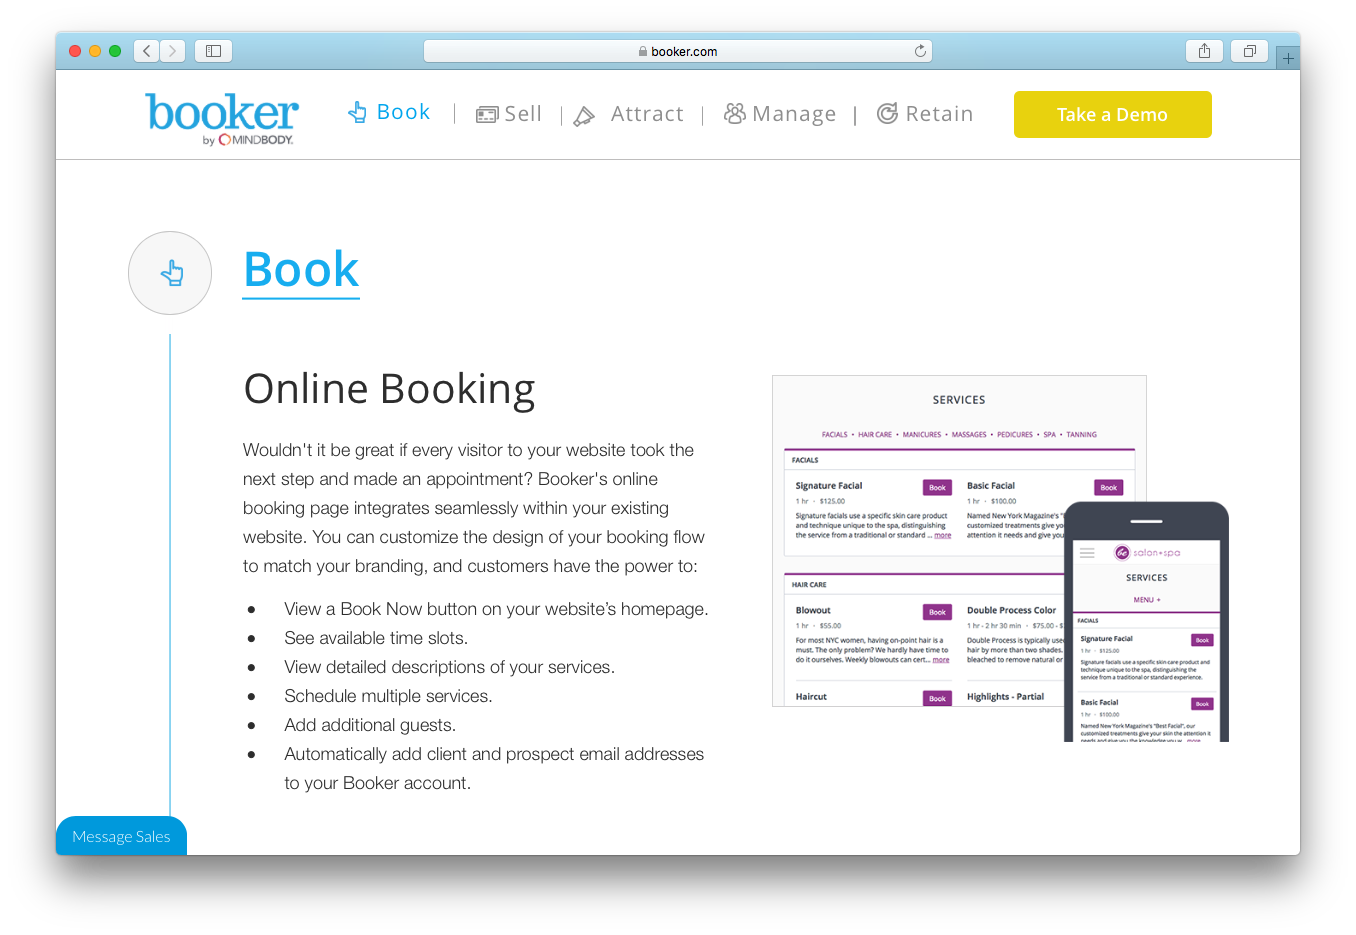 Booker online booking services